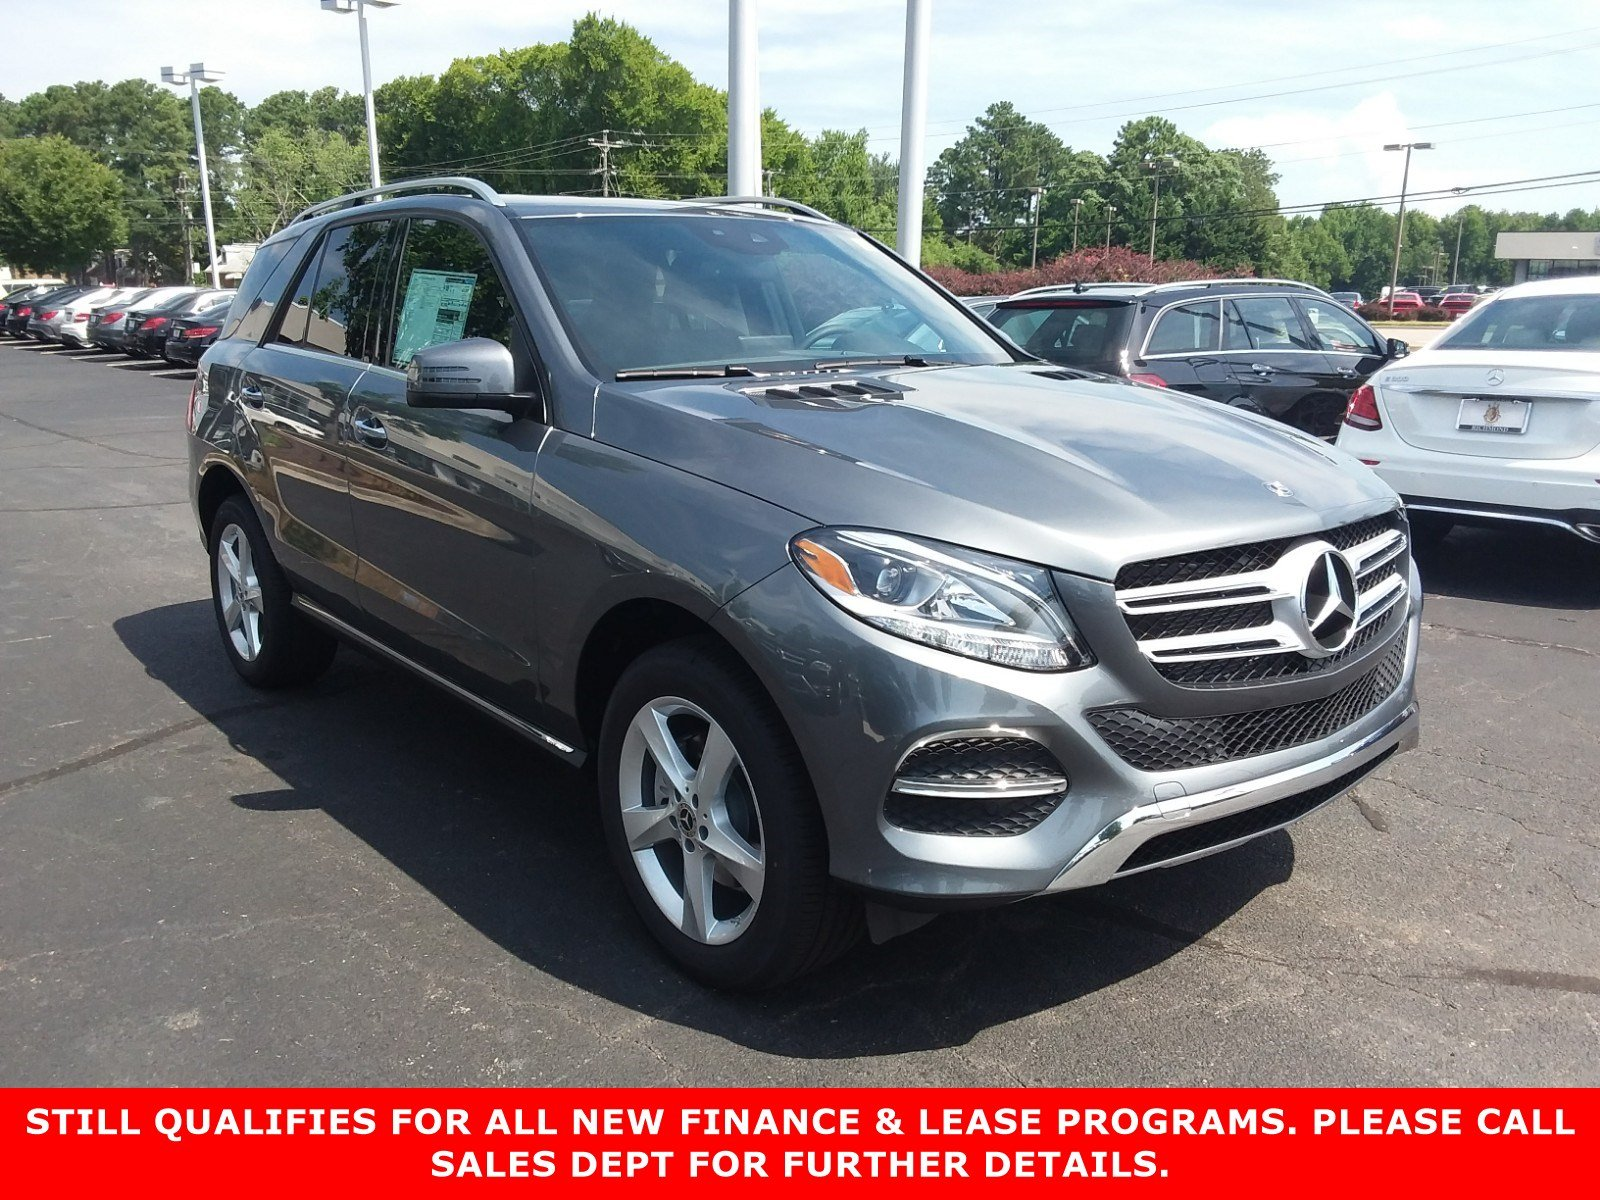 Pre Owned 2018 Mercedes Benz GLE GLE 350 SUV in Richmond